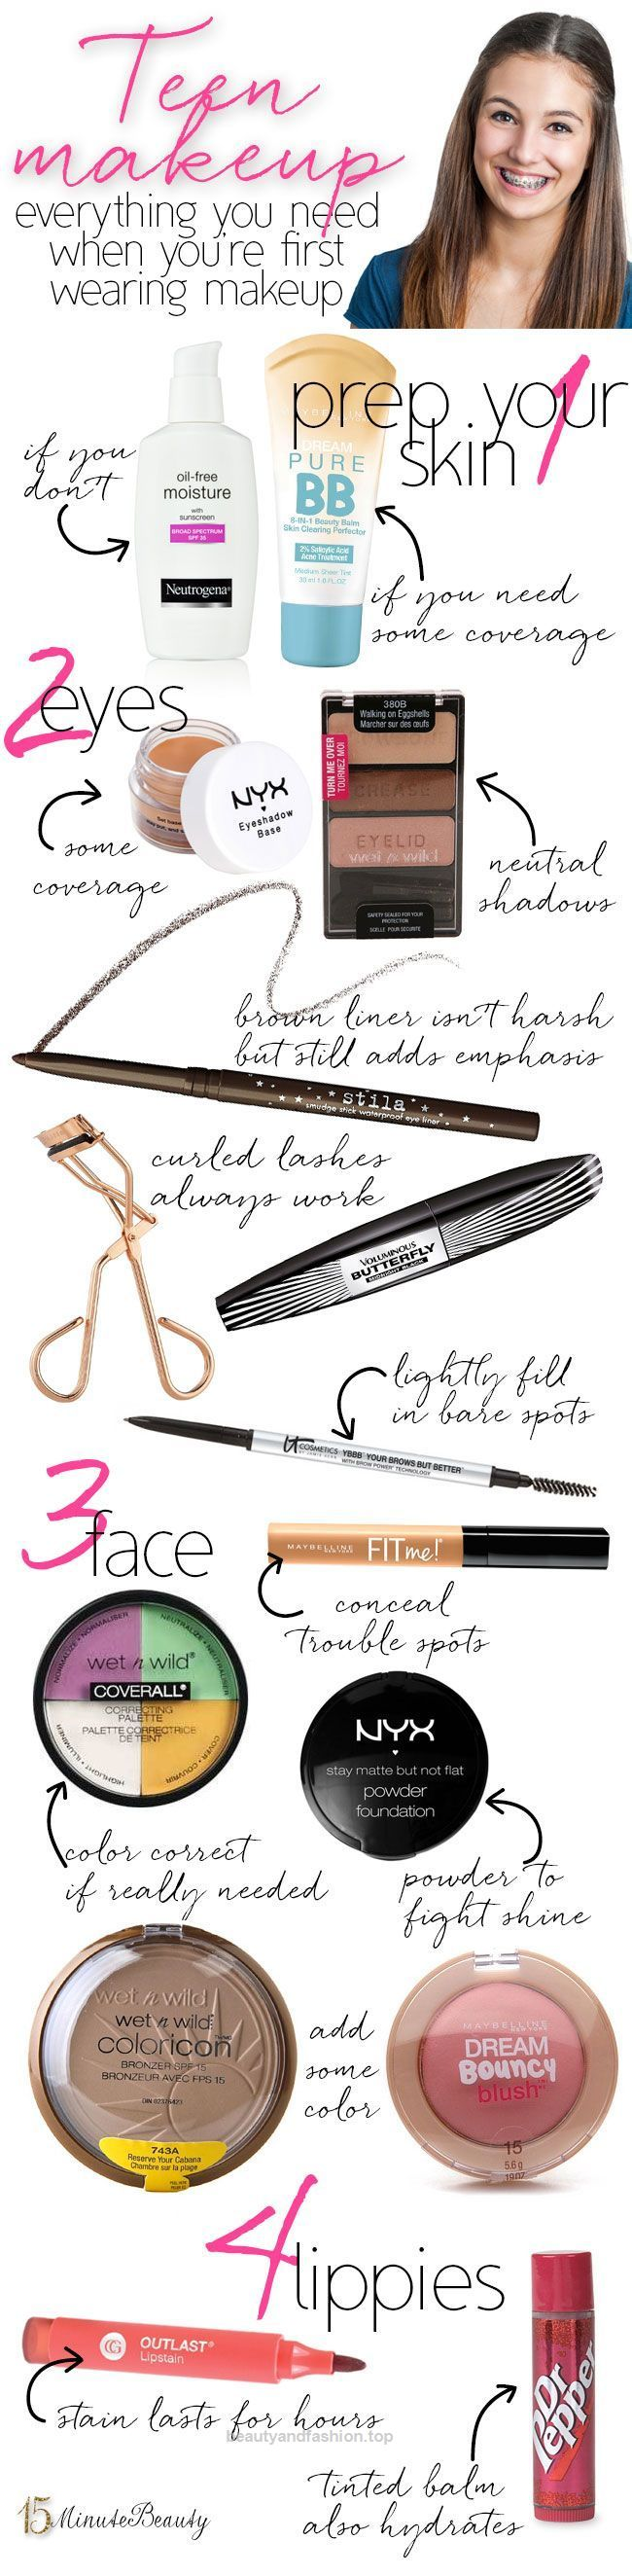 A Makeup Intro: What I Think Teens Should Start With In A Basic Makeup Kit  http://www.beautyandfashion.top/2017/08/01/a-makeup-intro-what-i-think-teens-should-start-with-in-a-basic-makeup-kit/